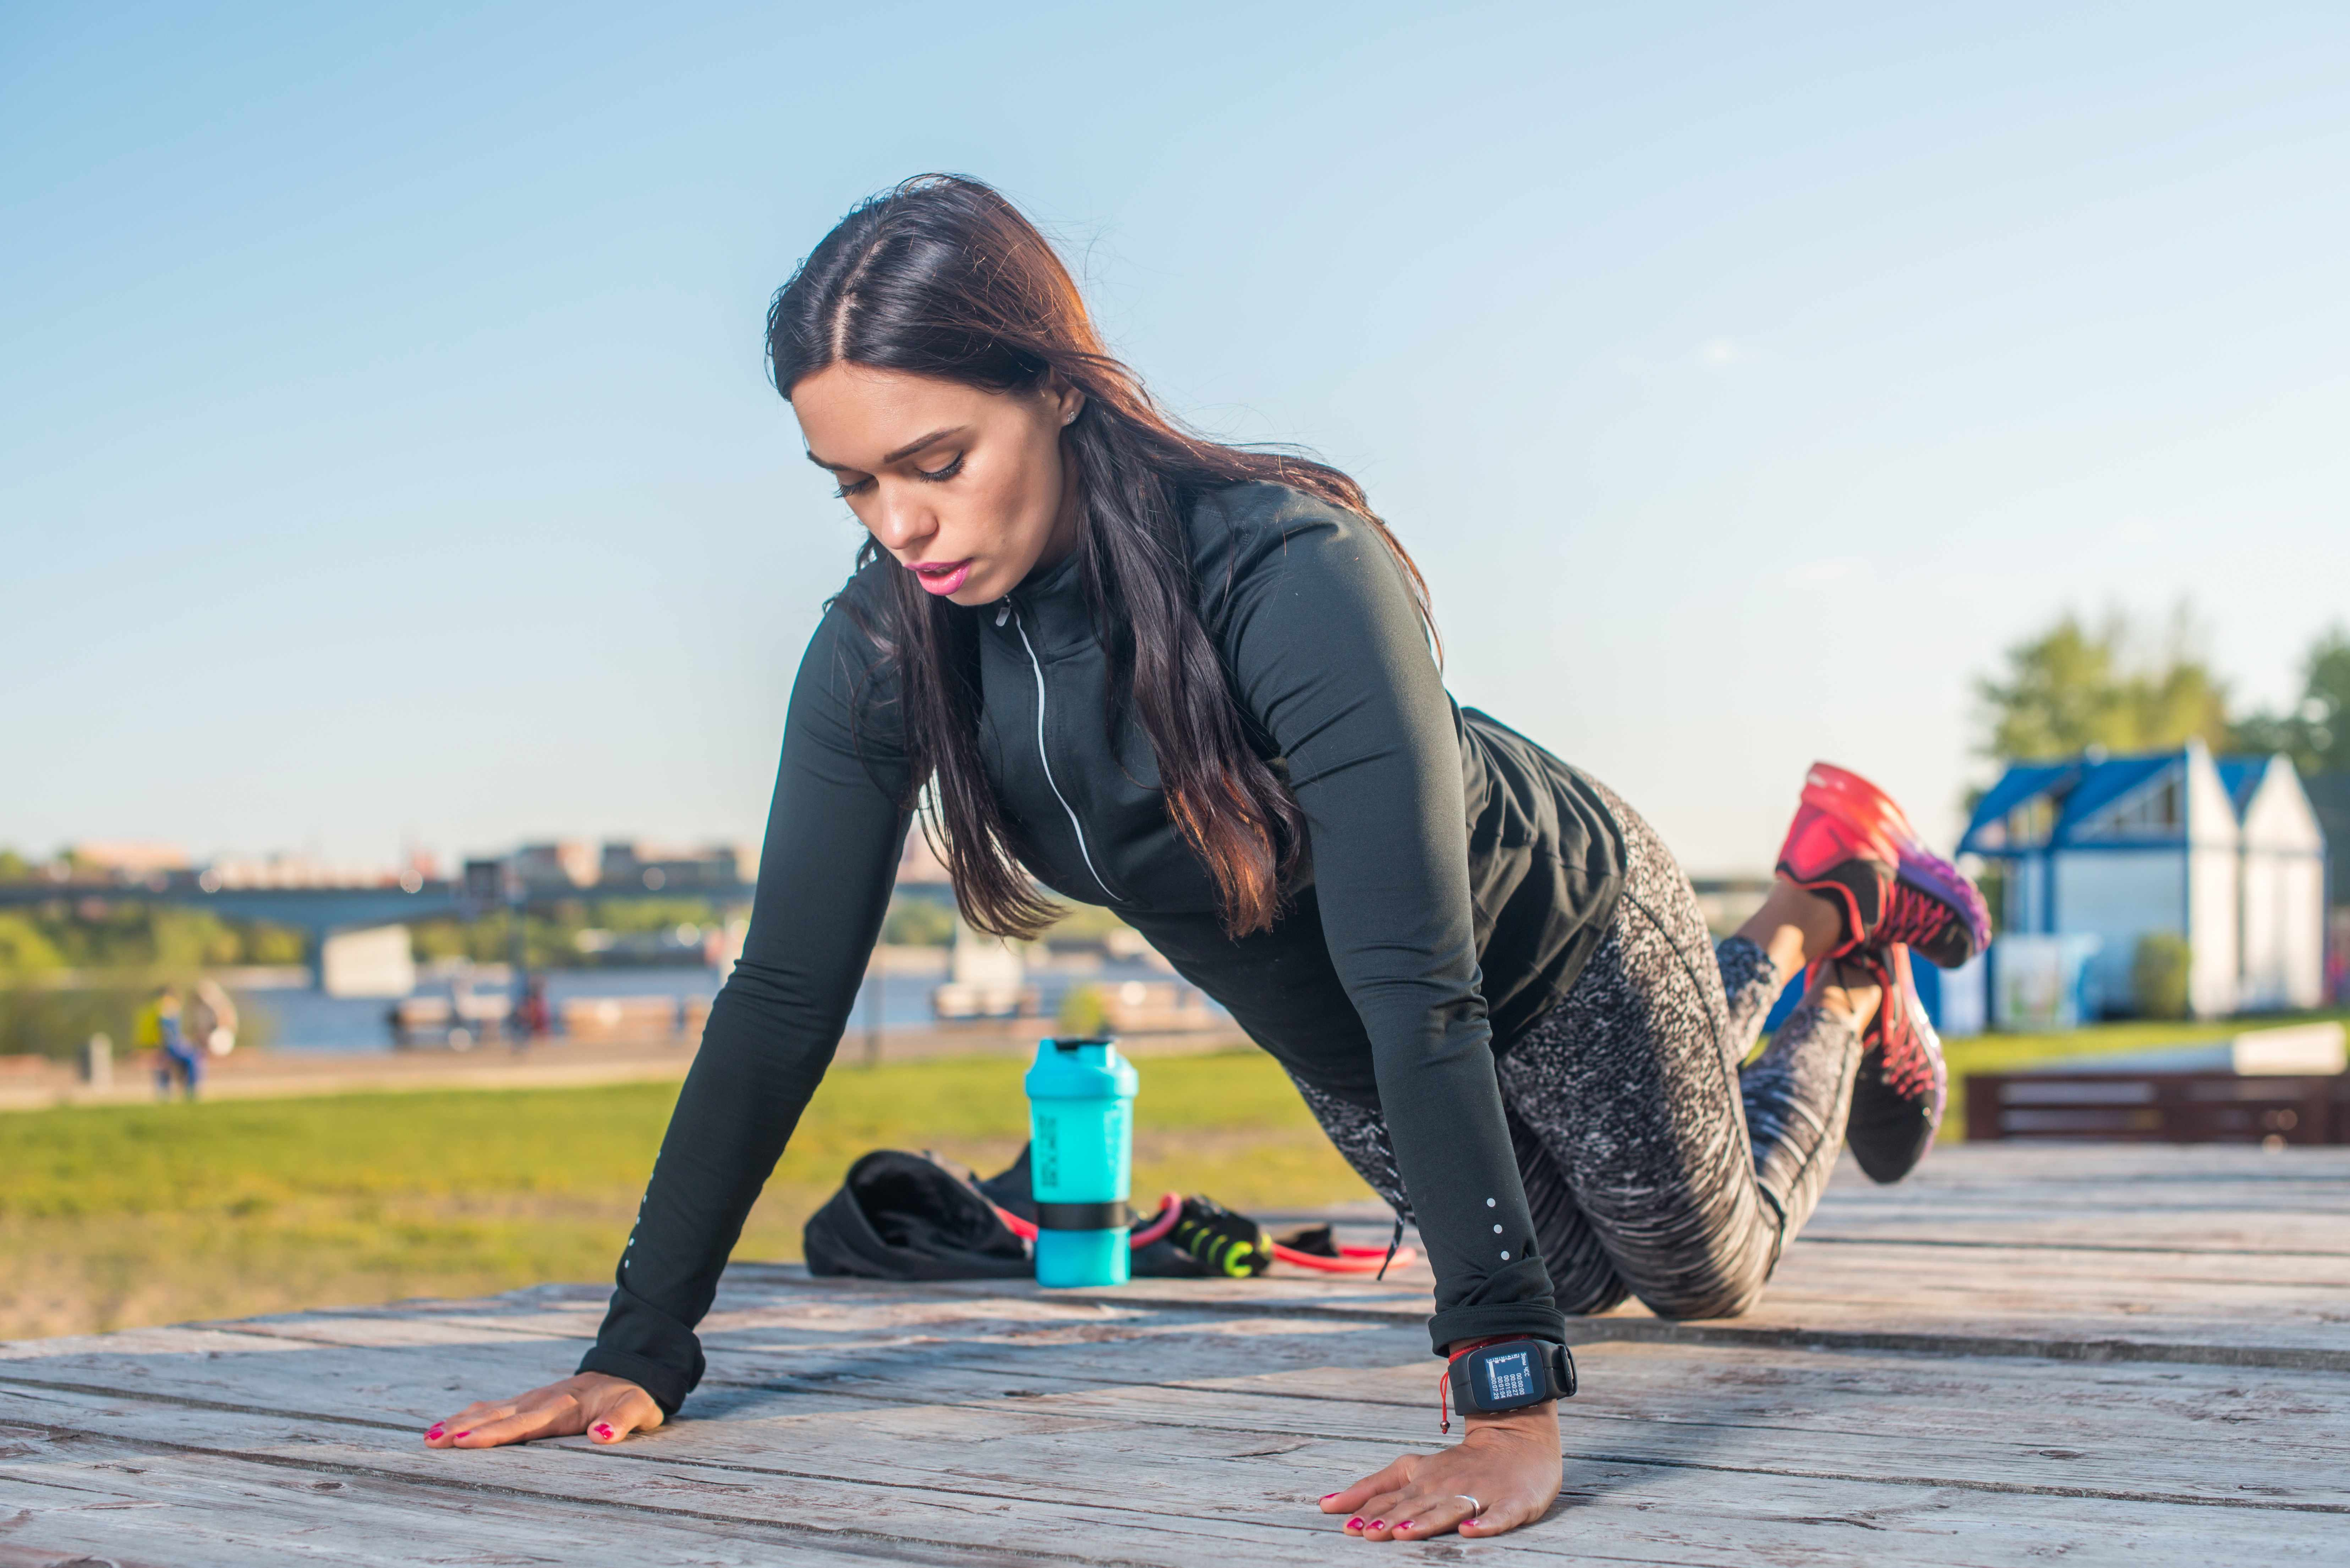 a young woman doing knee pushups on an exercise board outside